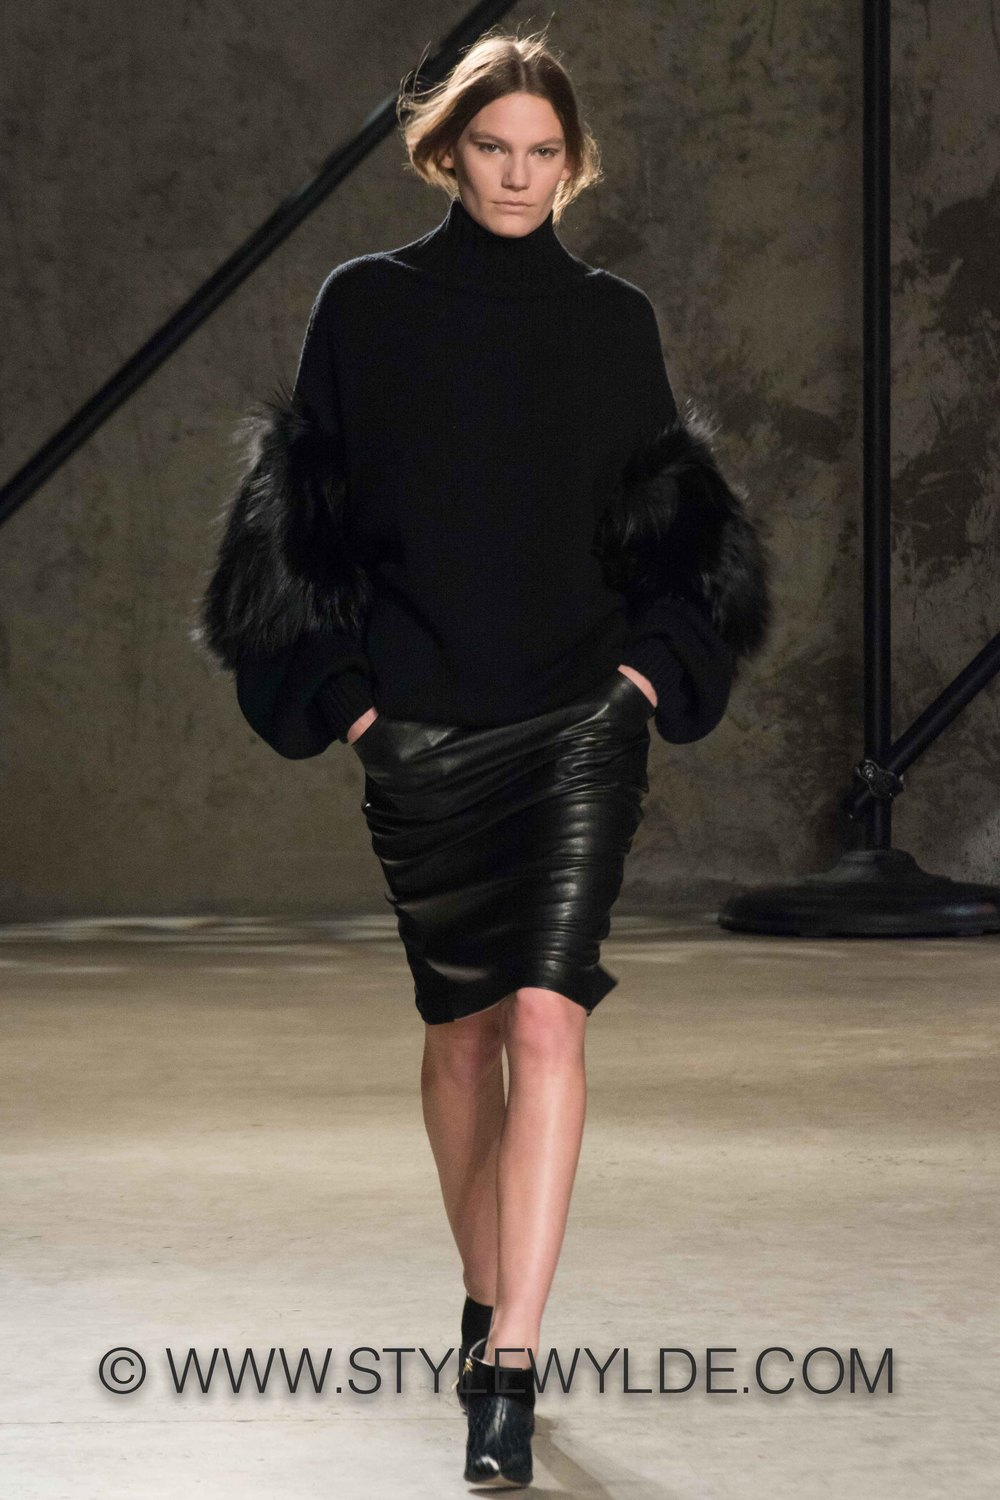 stylewylde_sally_lapointe_fw_2014-1.jpg